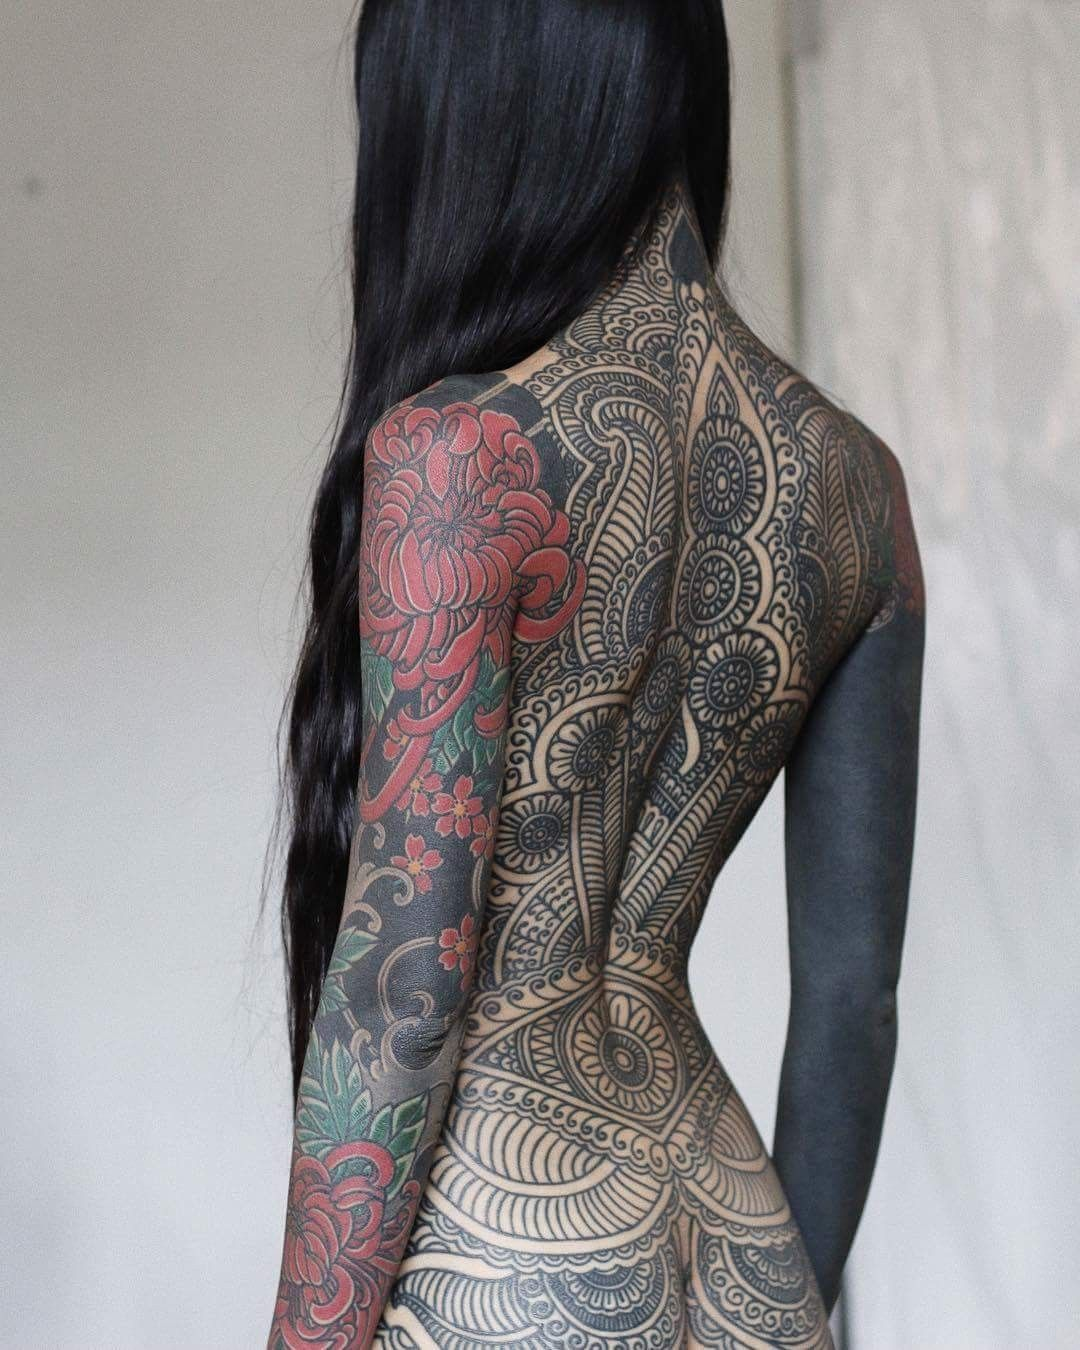 Lace bodysuit 34e  Pin by Eliza Williams on tattoo  Pinterest  Tattoos Body Art and